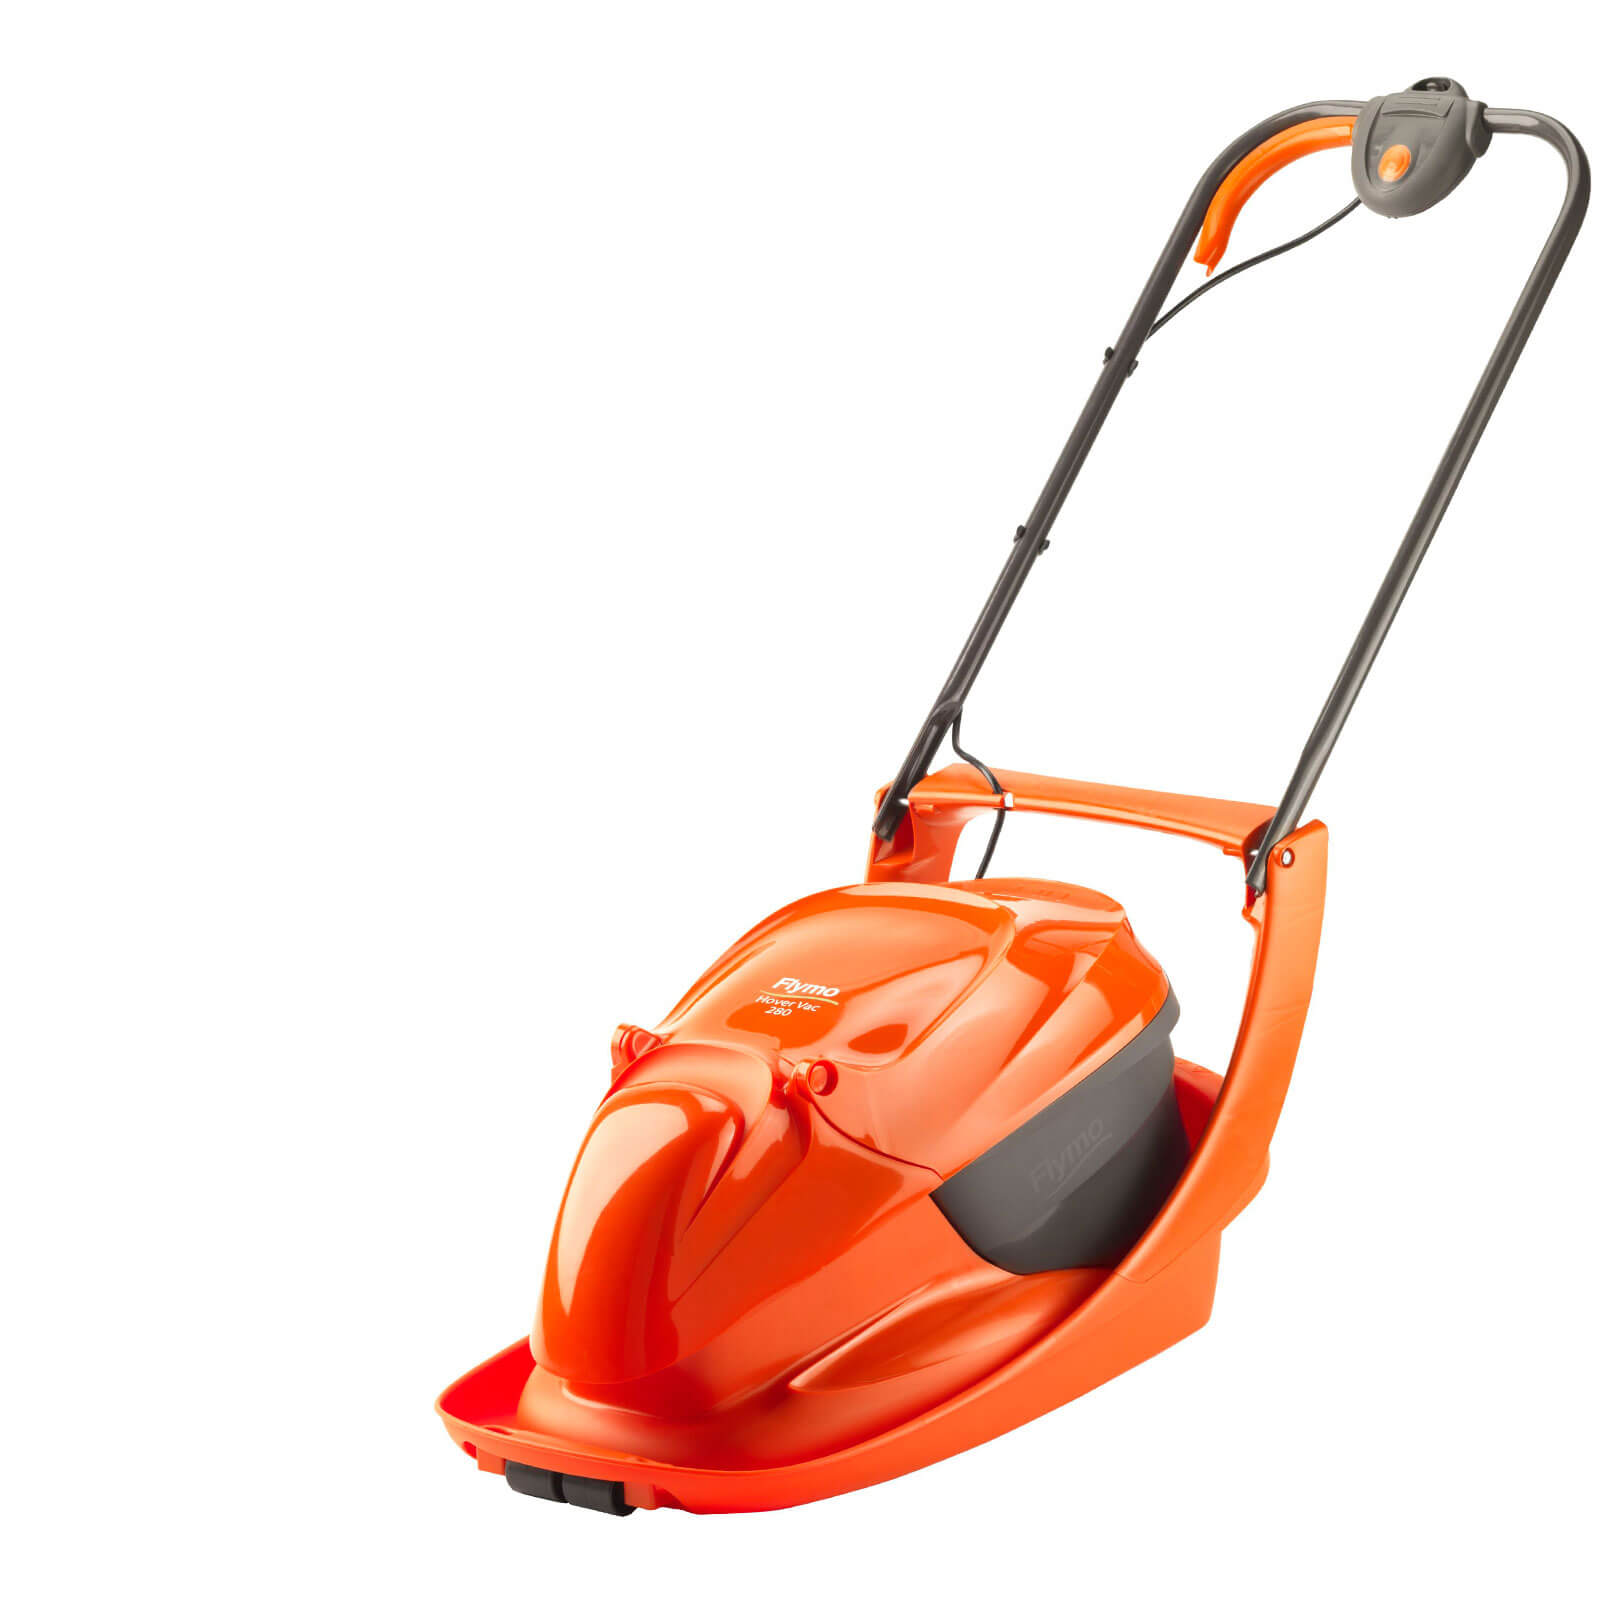 Image of Flymo HOVER VAC 280 Hover Mower 280mm 240v